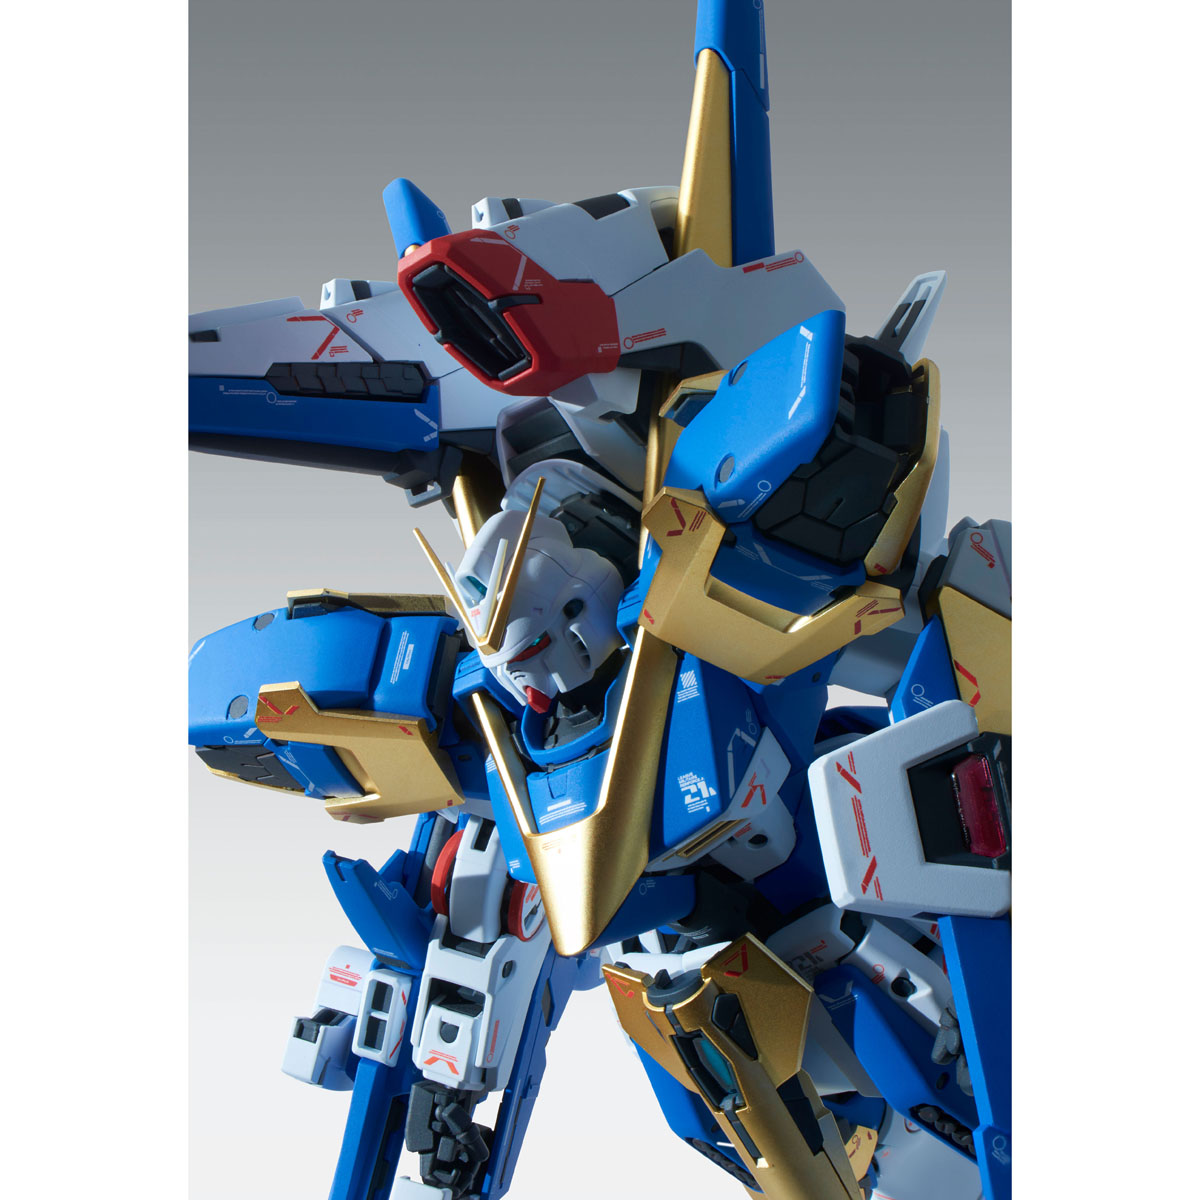 MG 1/100 VICTORY TWO ASSAULT BUSTER GUNDAM Ver.Ka [Aug 2020 Delivery]